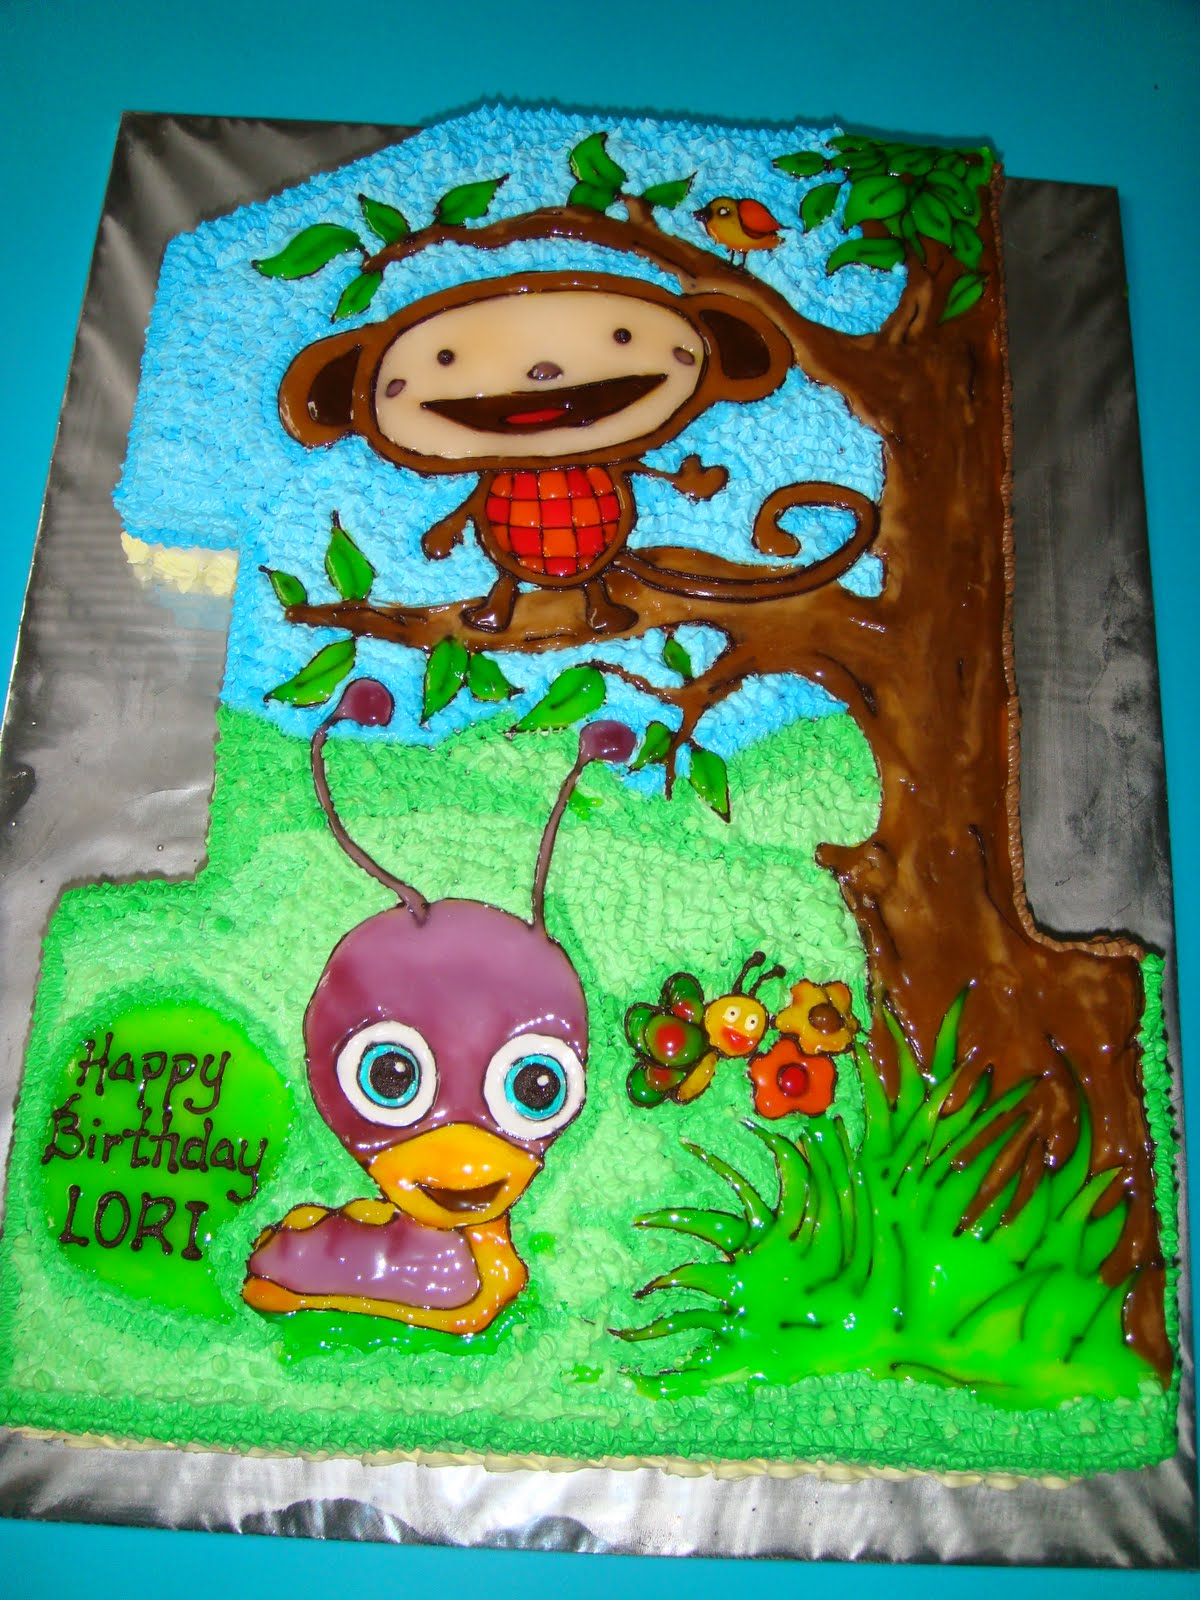 Yummy Baking Babytv Oliver And Tulli Birthday Cake